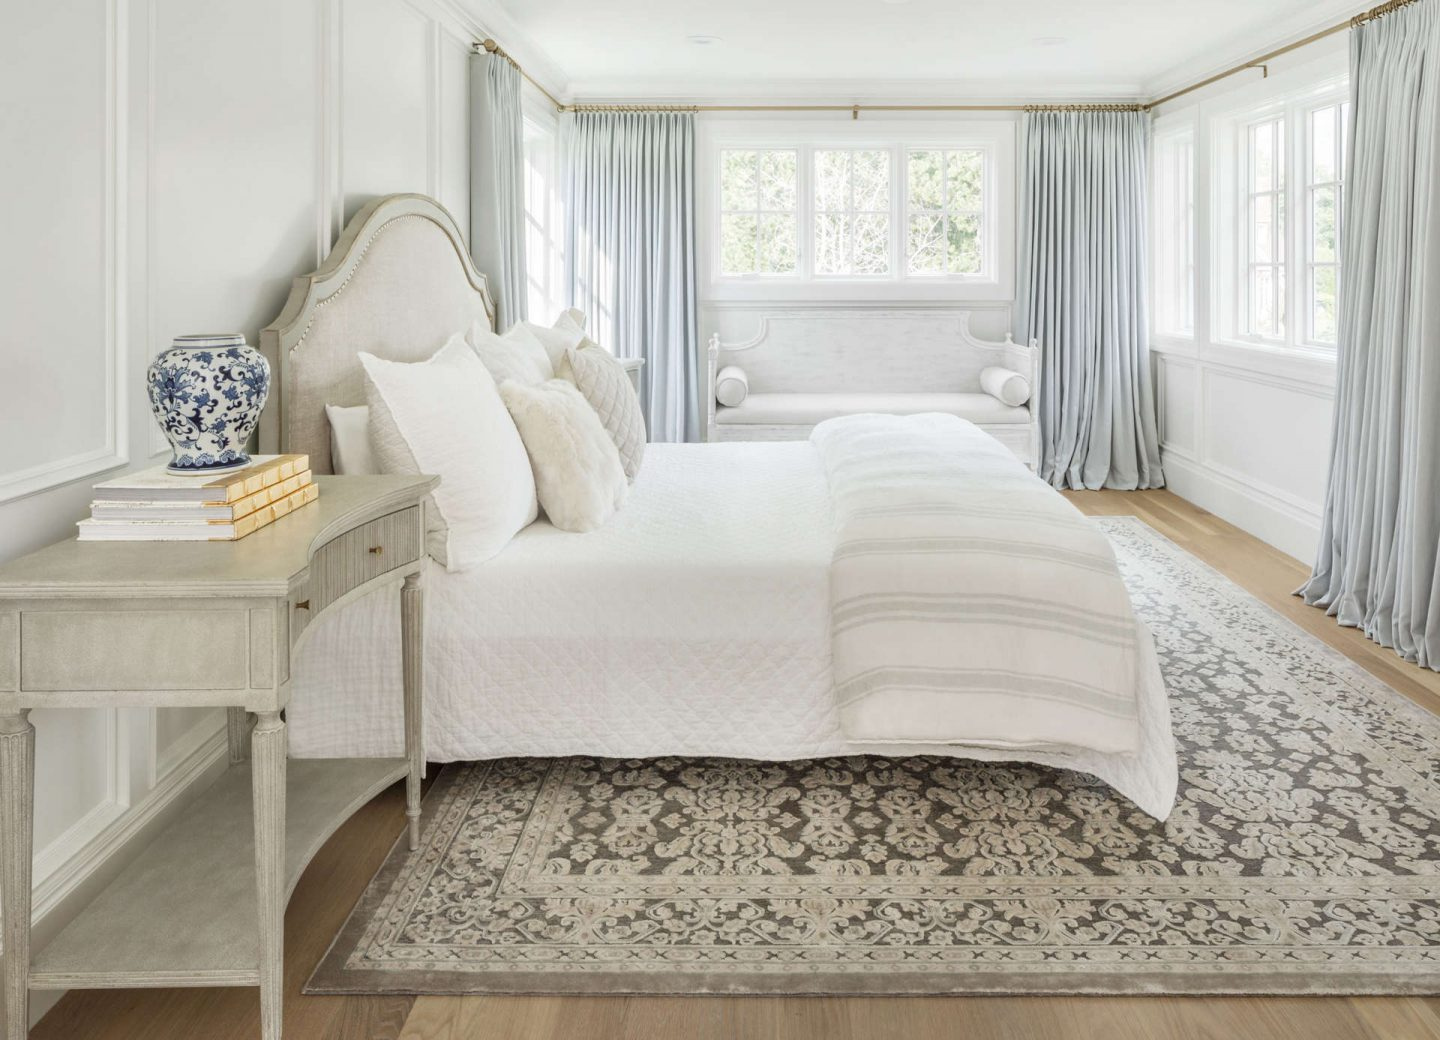 Gorgeous serene bedroom with quiet colors and beautiful paneled walls. #thefoxgroup #bedroom #interiordesign